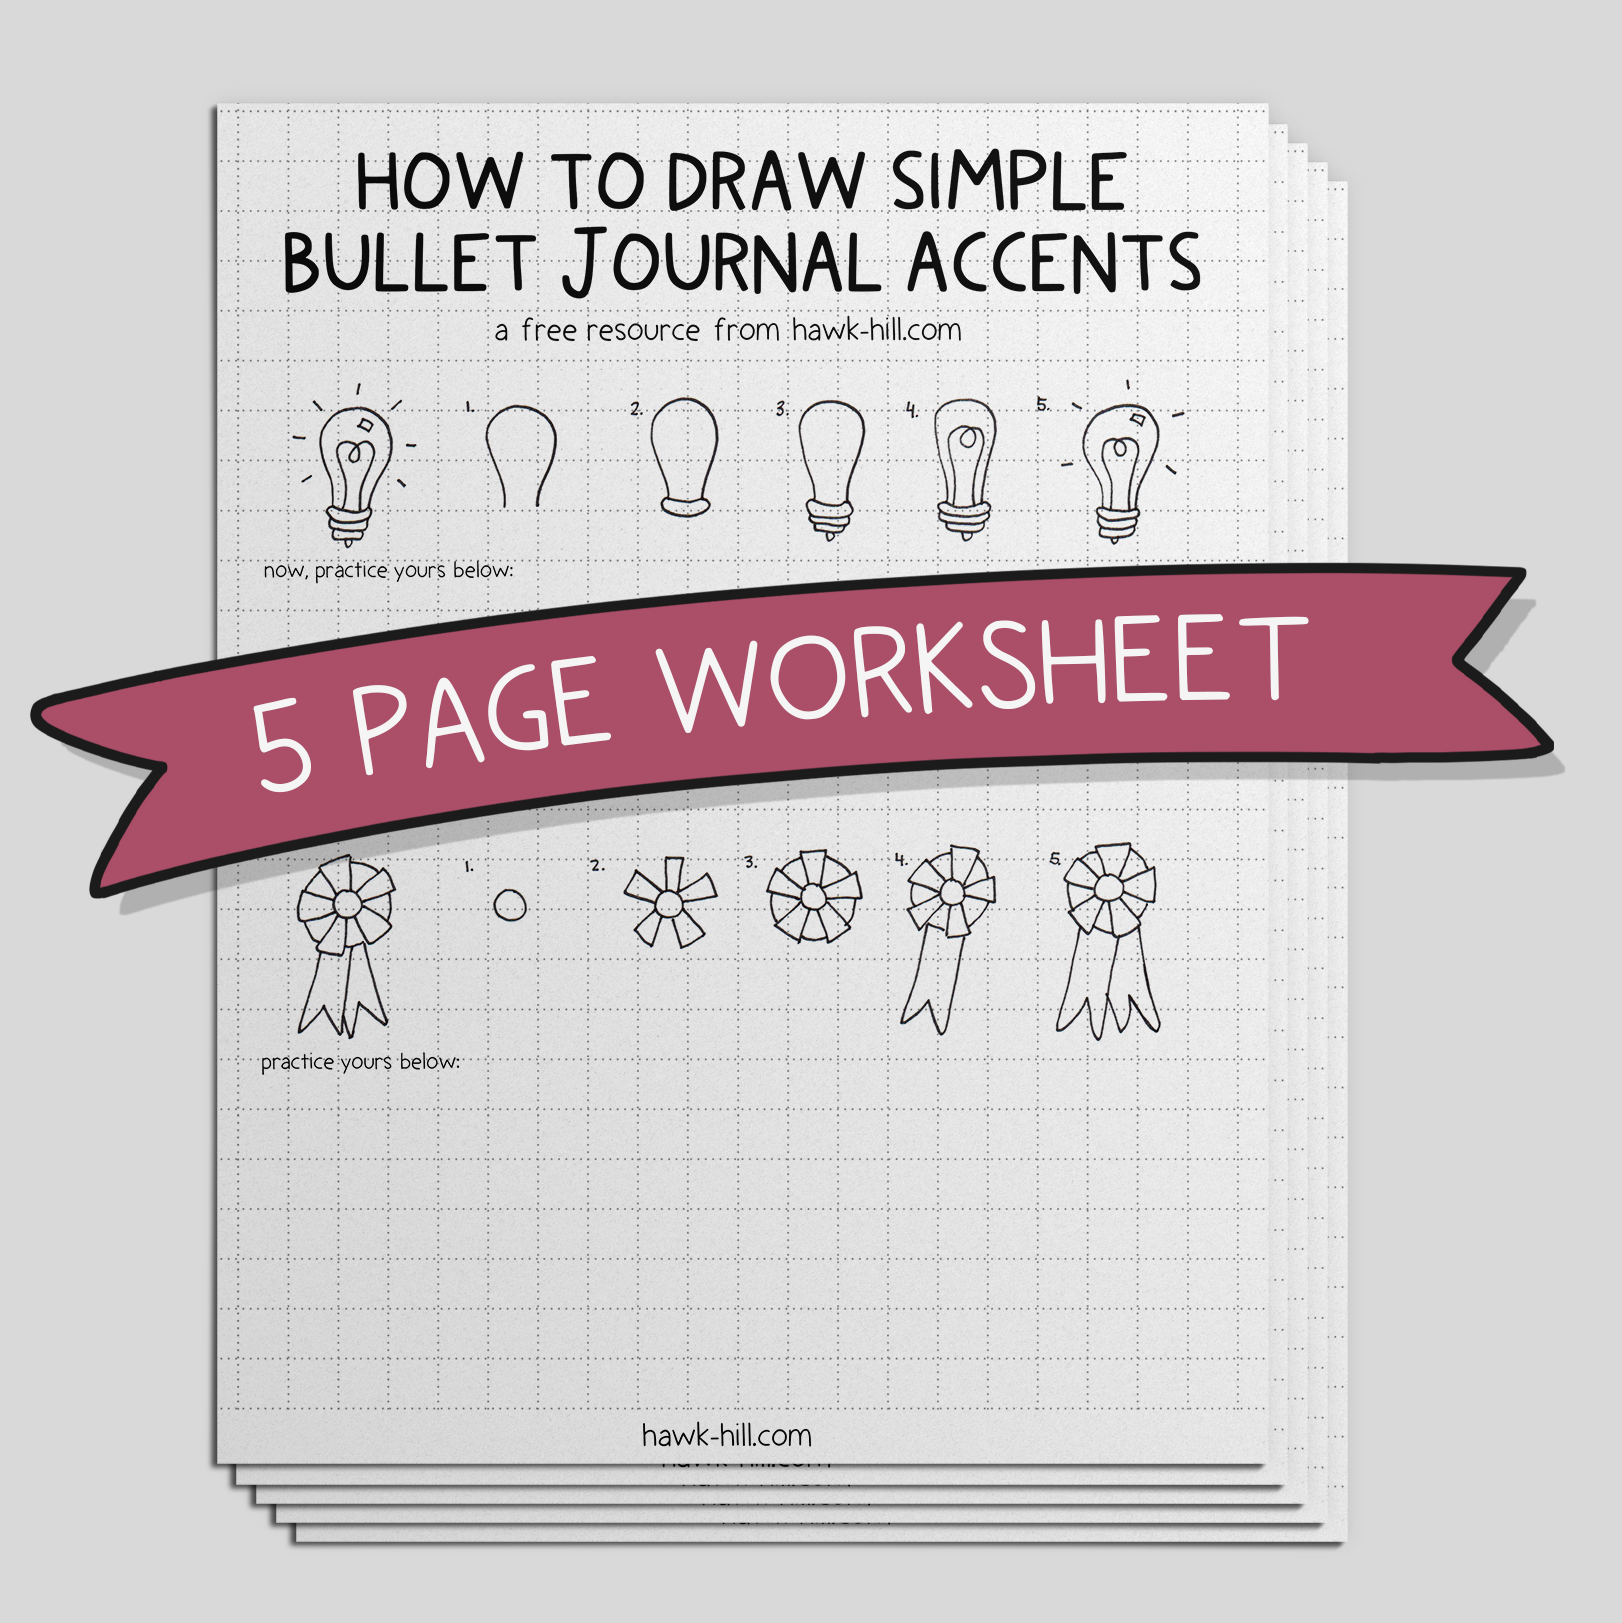 mockup of a set of worksheets on drawing bullet journal accents